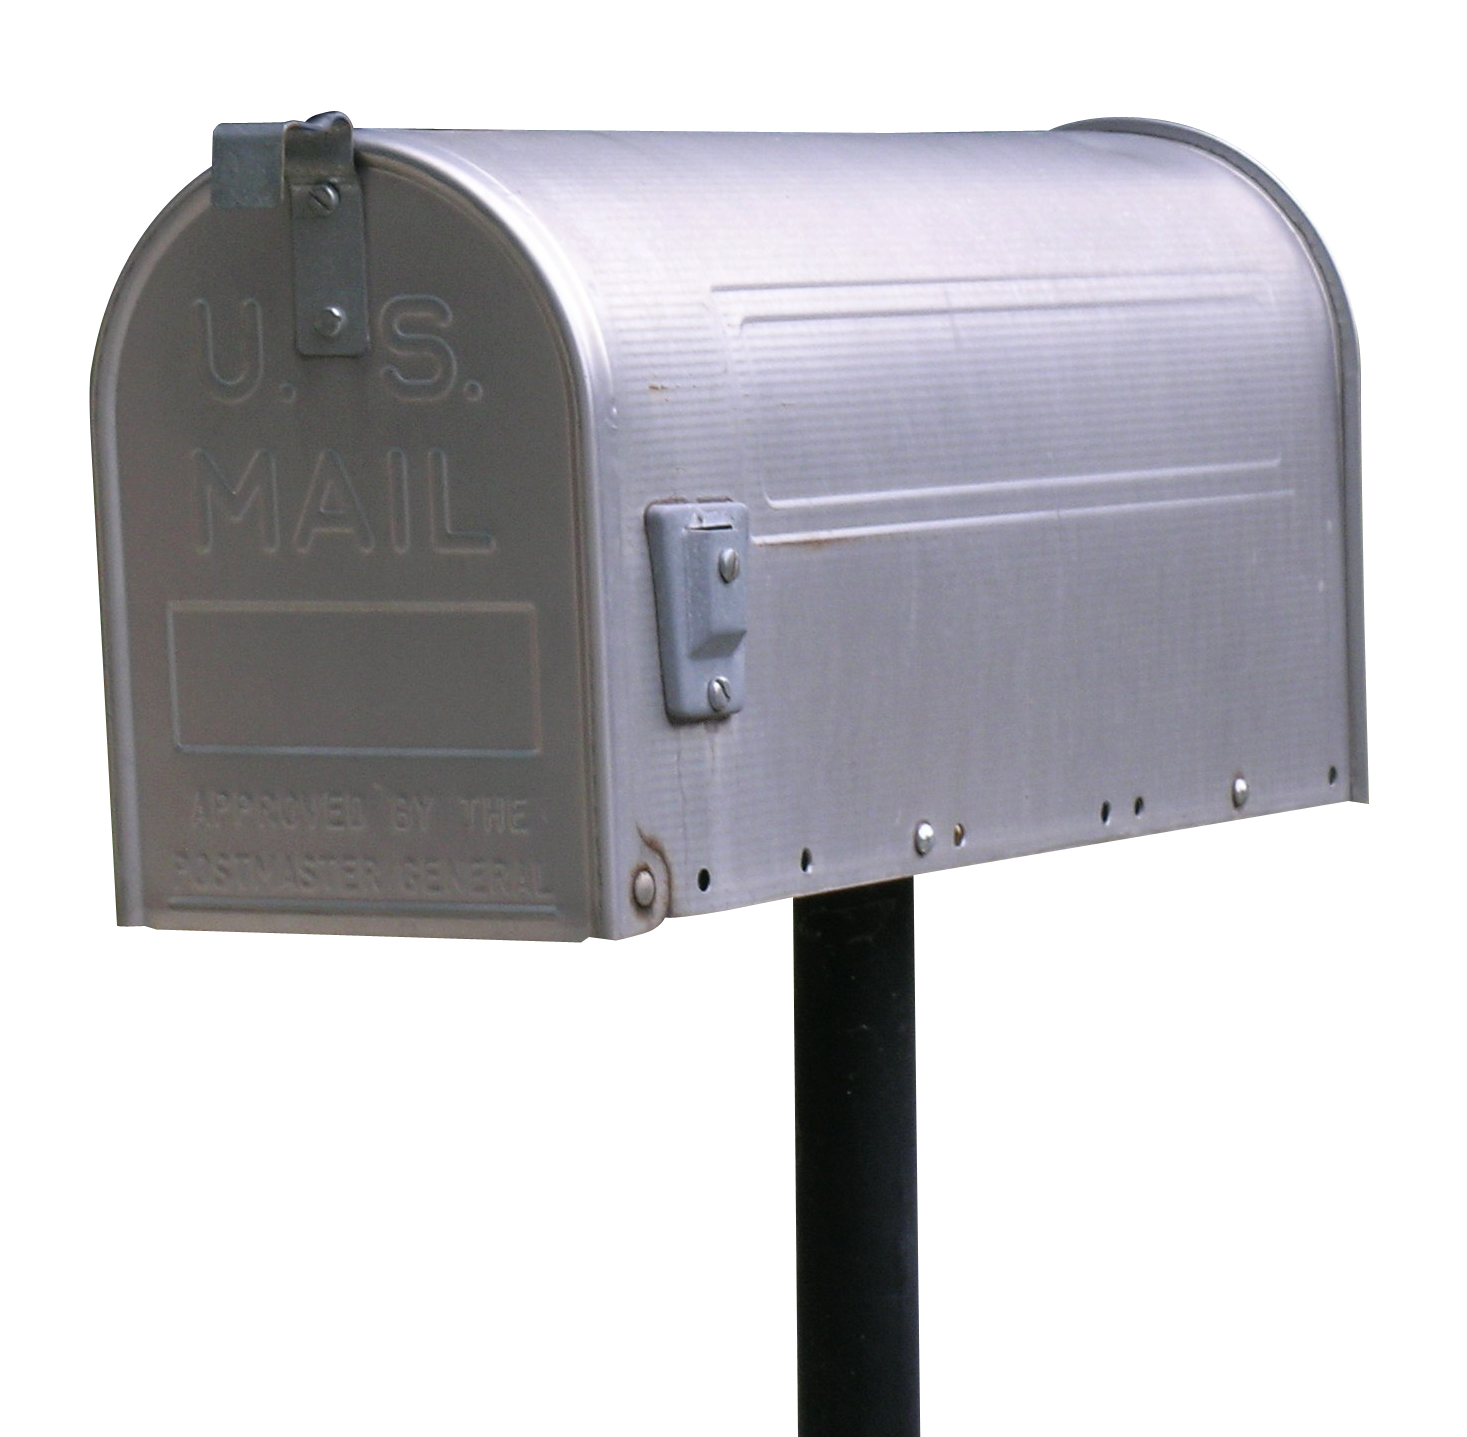 Mailbox clipart transparent background. Png image purepng free